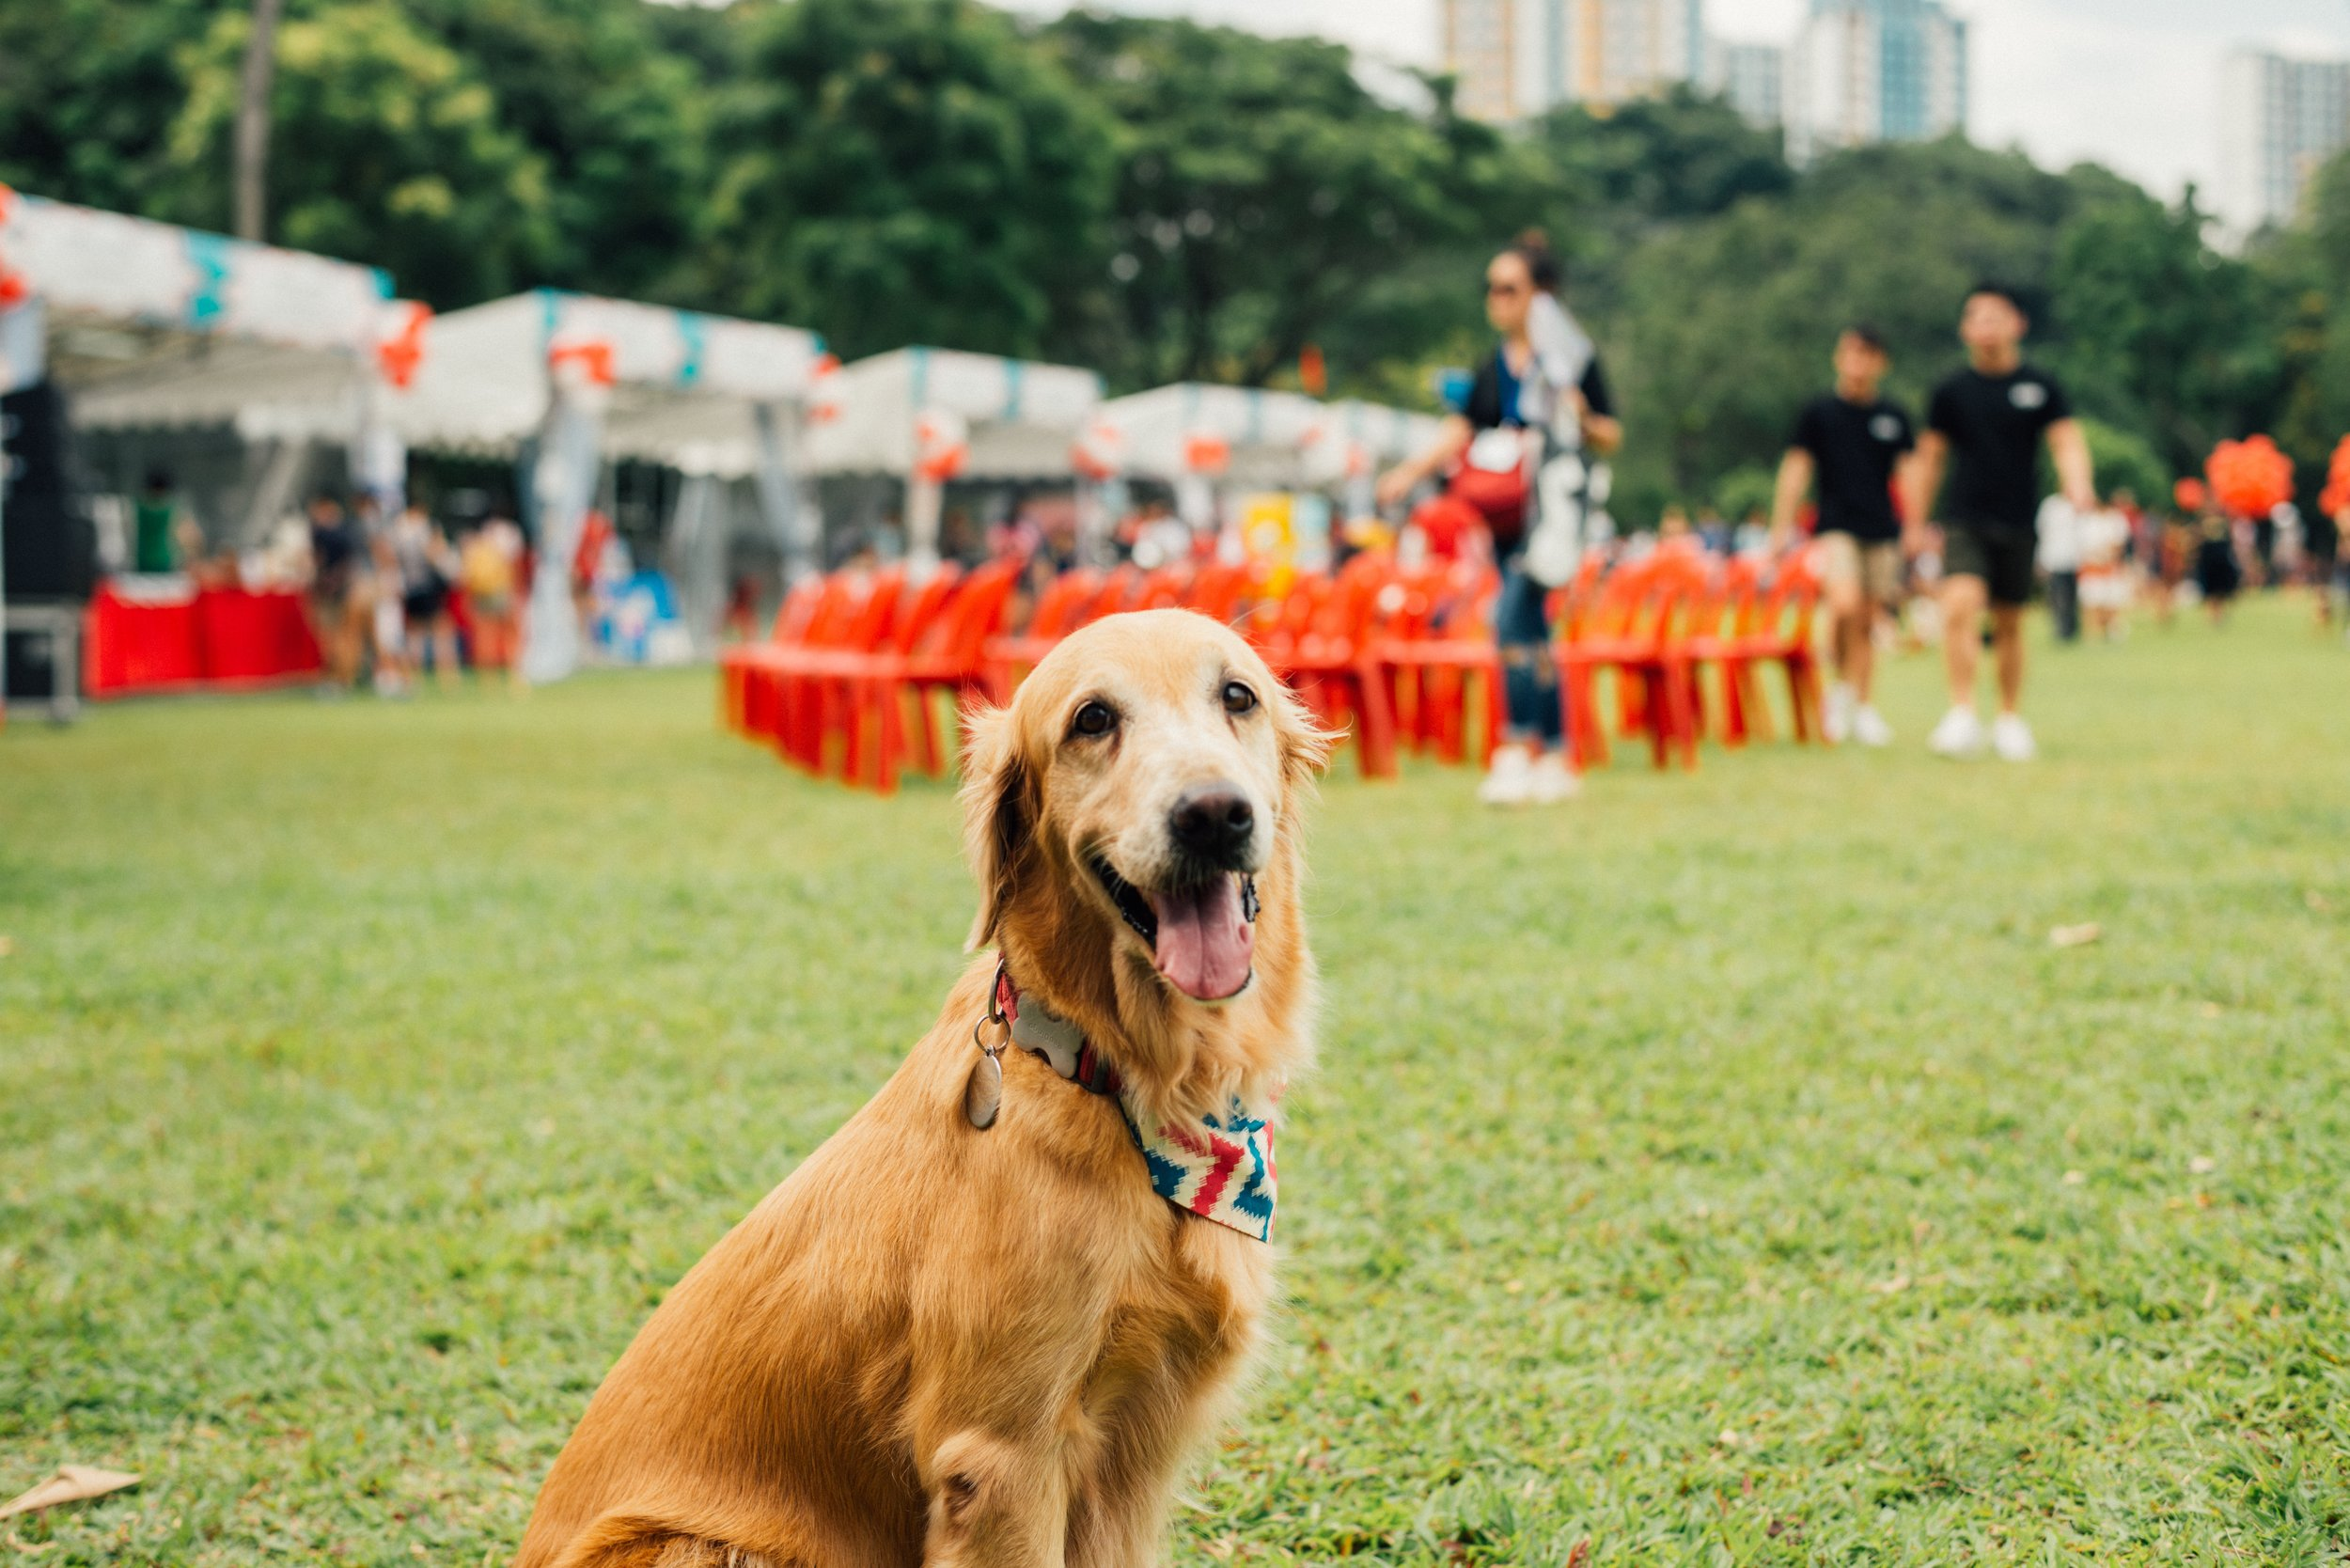 GET READY TO BOND WITH YOUR BEST FRIEND - Lexus of Edmonton Dog City Festival is Edmonton's festival designed for you and your dog. Dog City is everything you love about summer festivals in Edmonton with one amazing difference: DOGS. EVERYWHERE